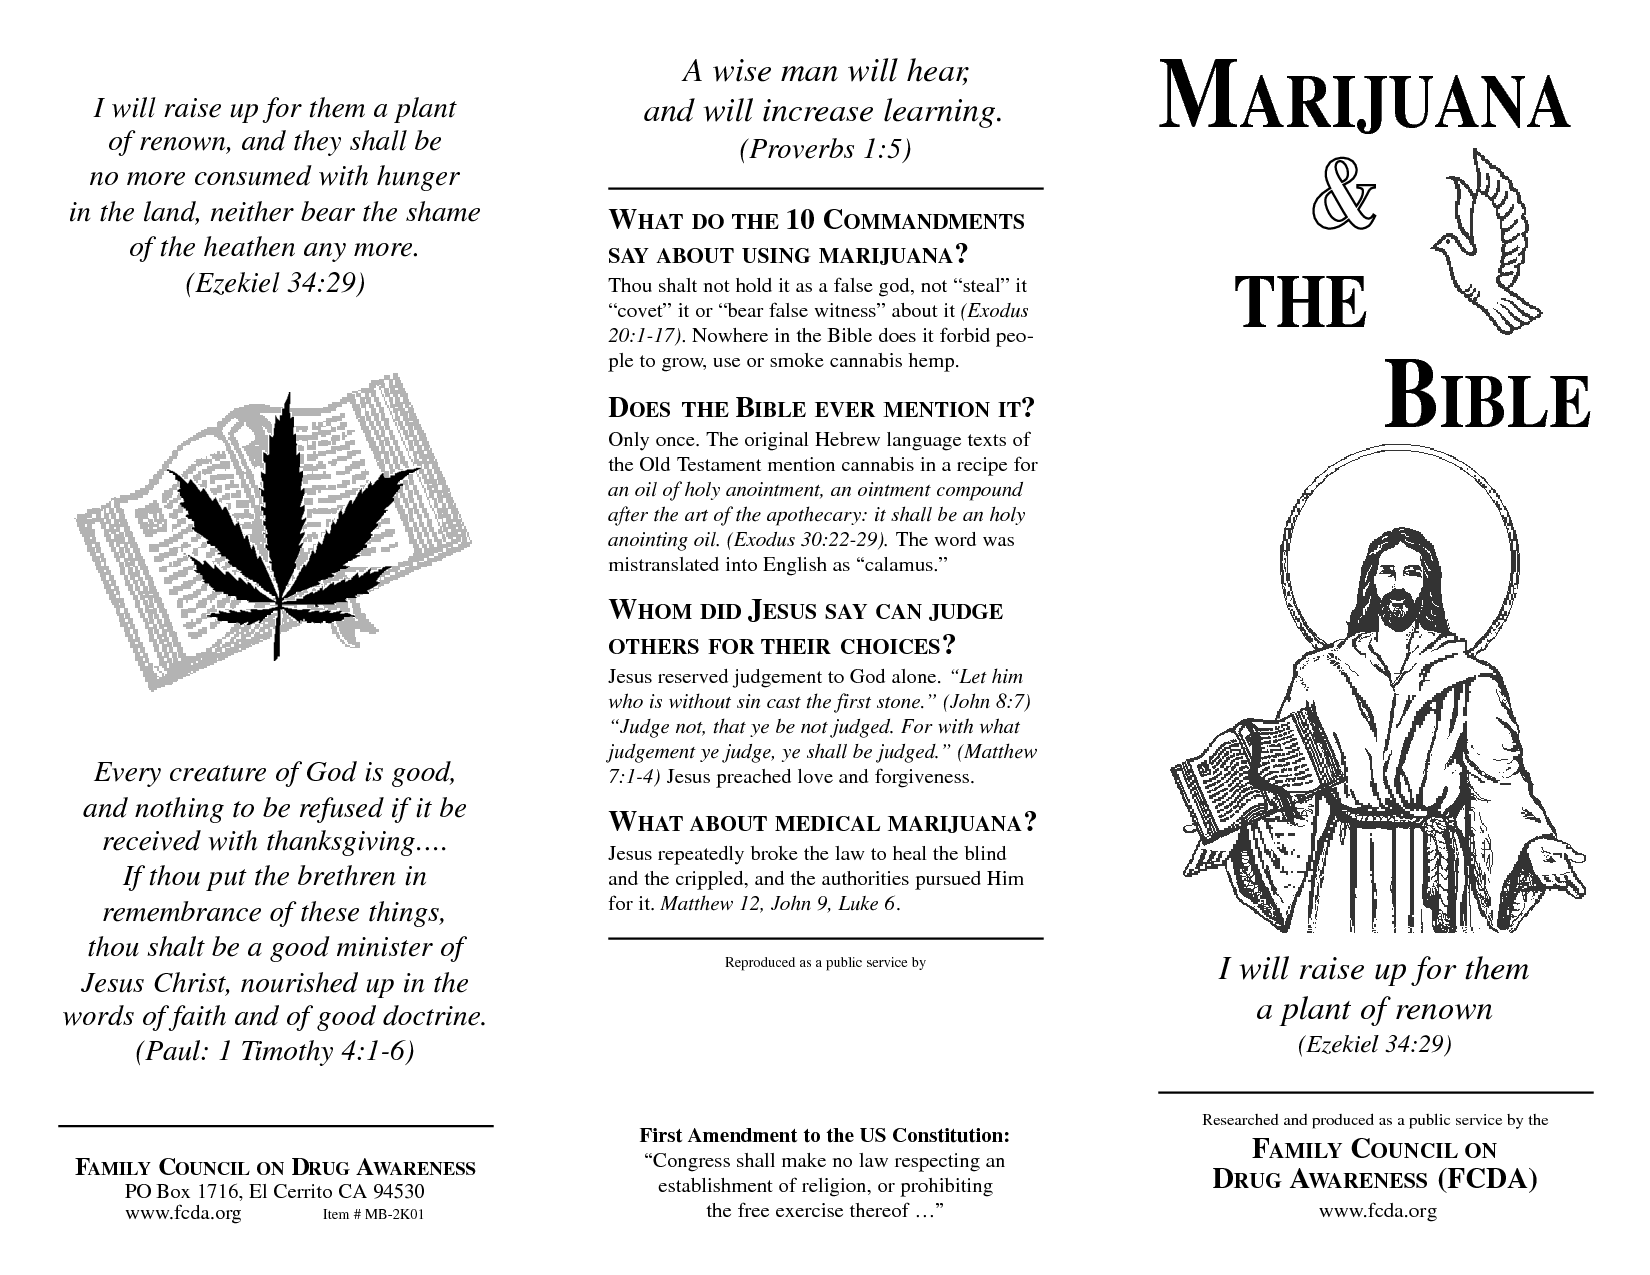 004 what the bible says about guilt MARIJUANA THE BIBLE